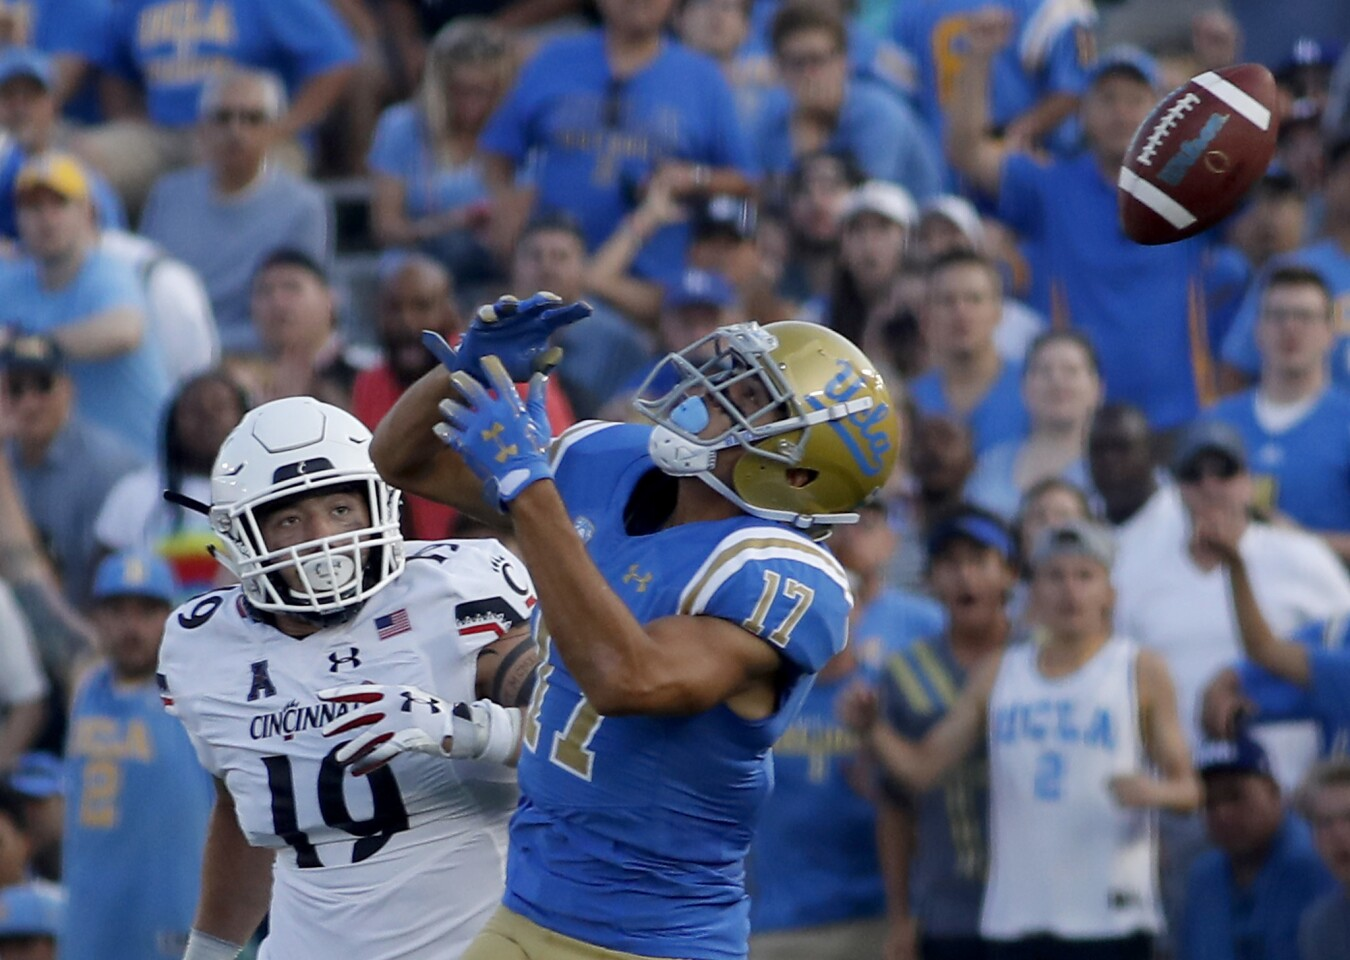 UCLA wide receiver Christian Pabico can't find the handle on a pass as Cincinnati's Ethan Tucky defends in the third quarter at the Rose Bowl in Pasadena on Saturday.